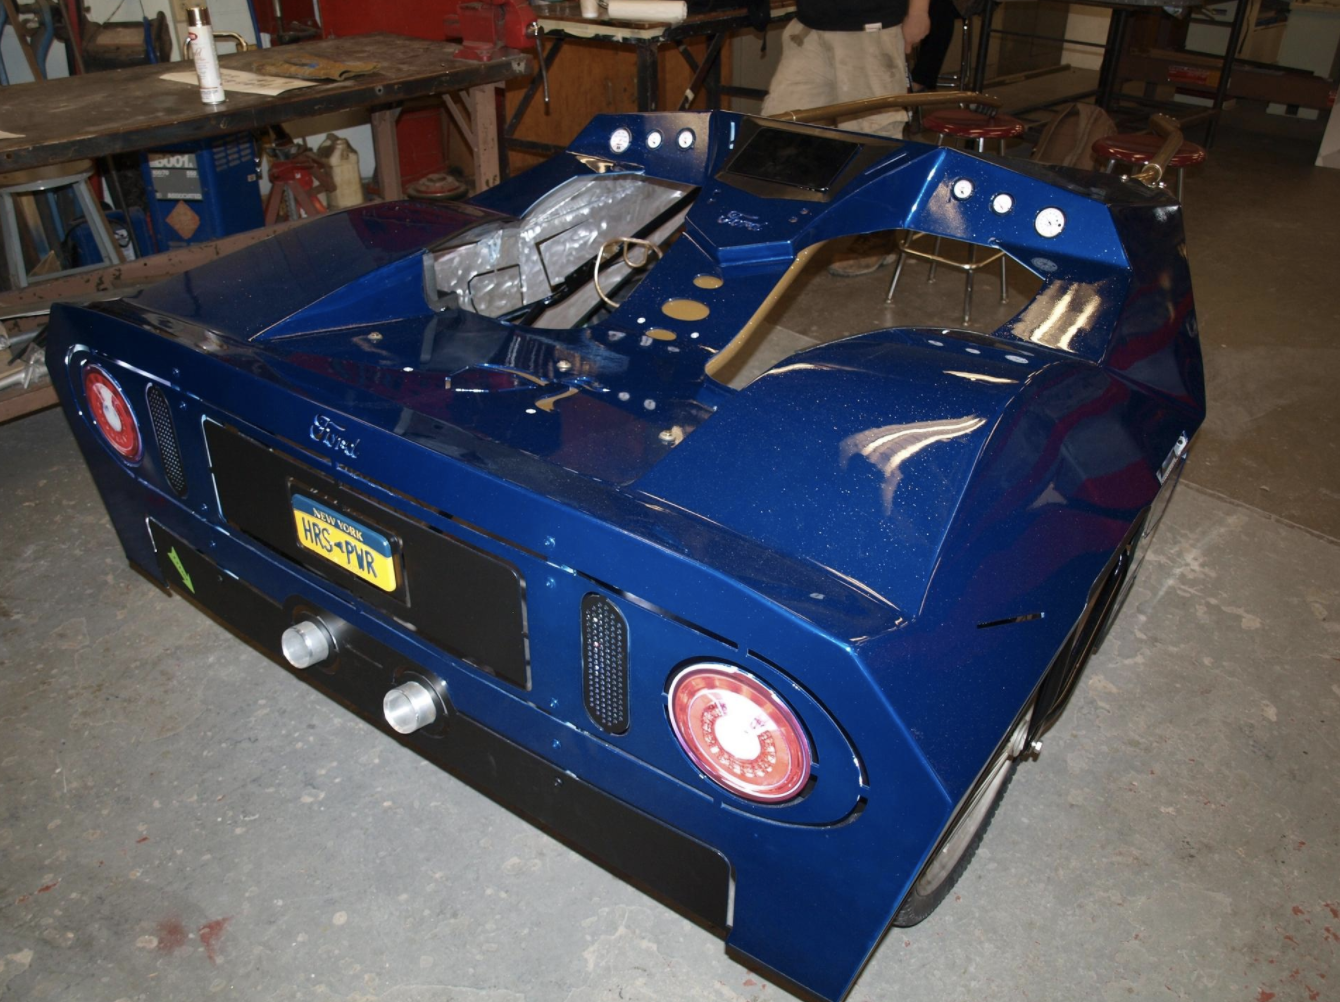 Students at Pine Bush High School were commissioned to redesign the sulky.